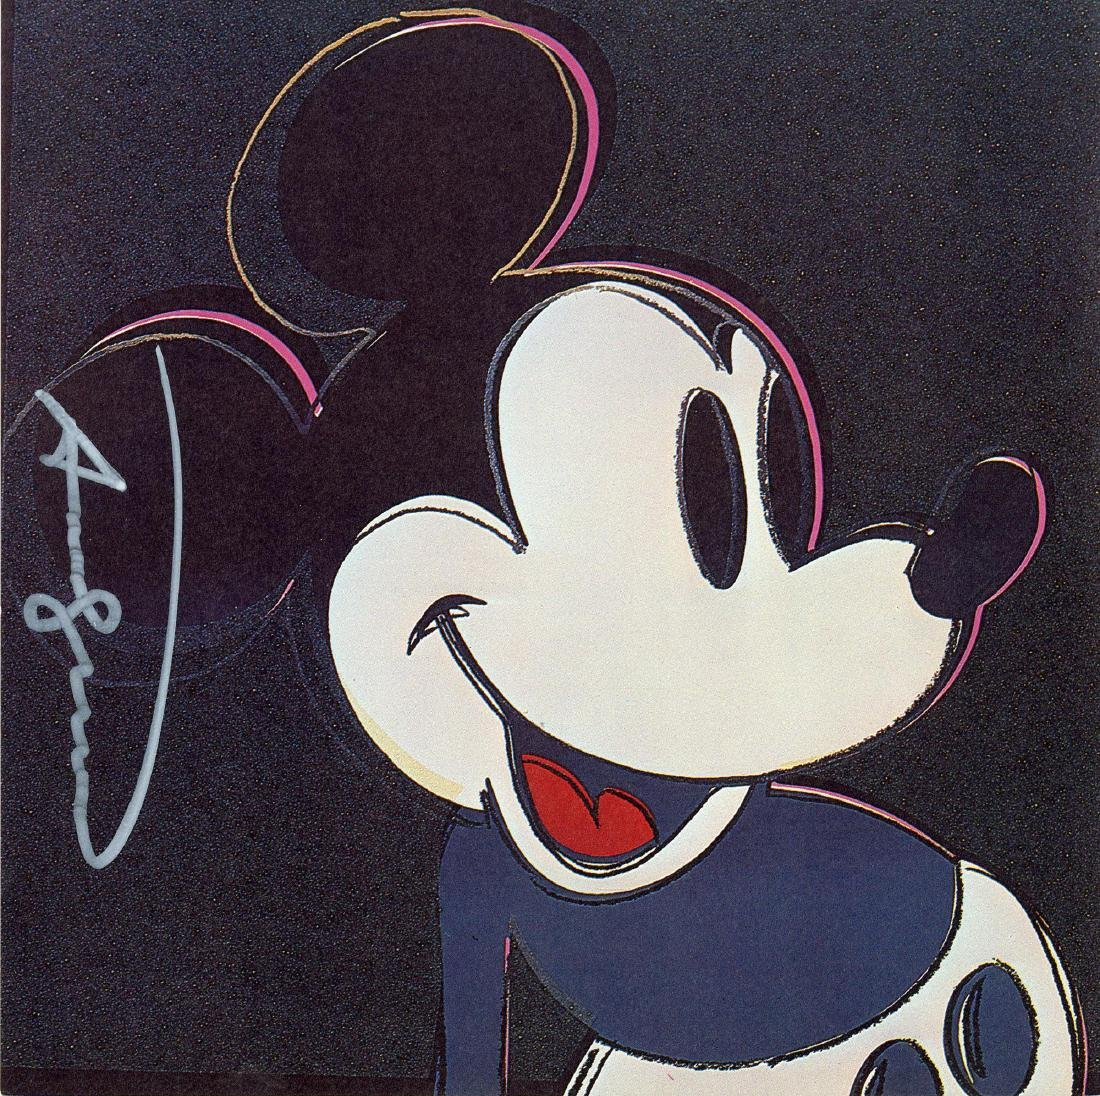 909: ANDY WARHOL - Mickey Mouse